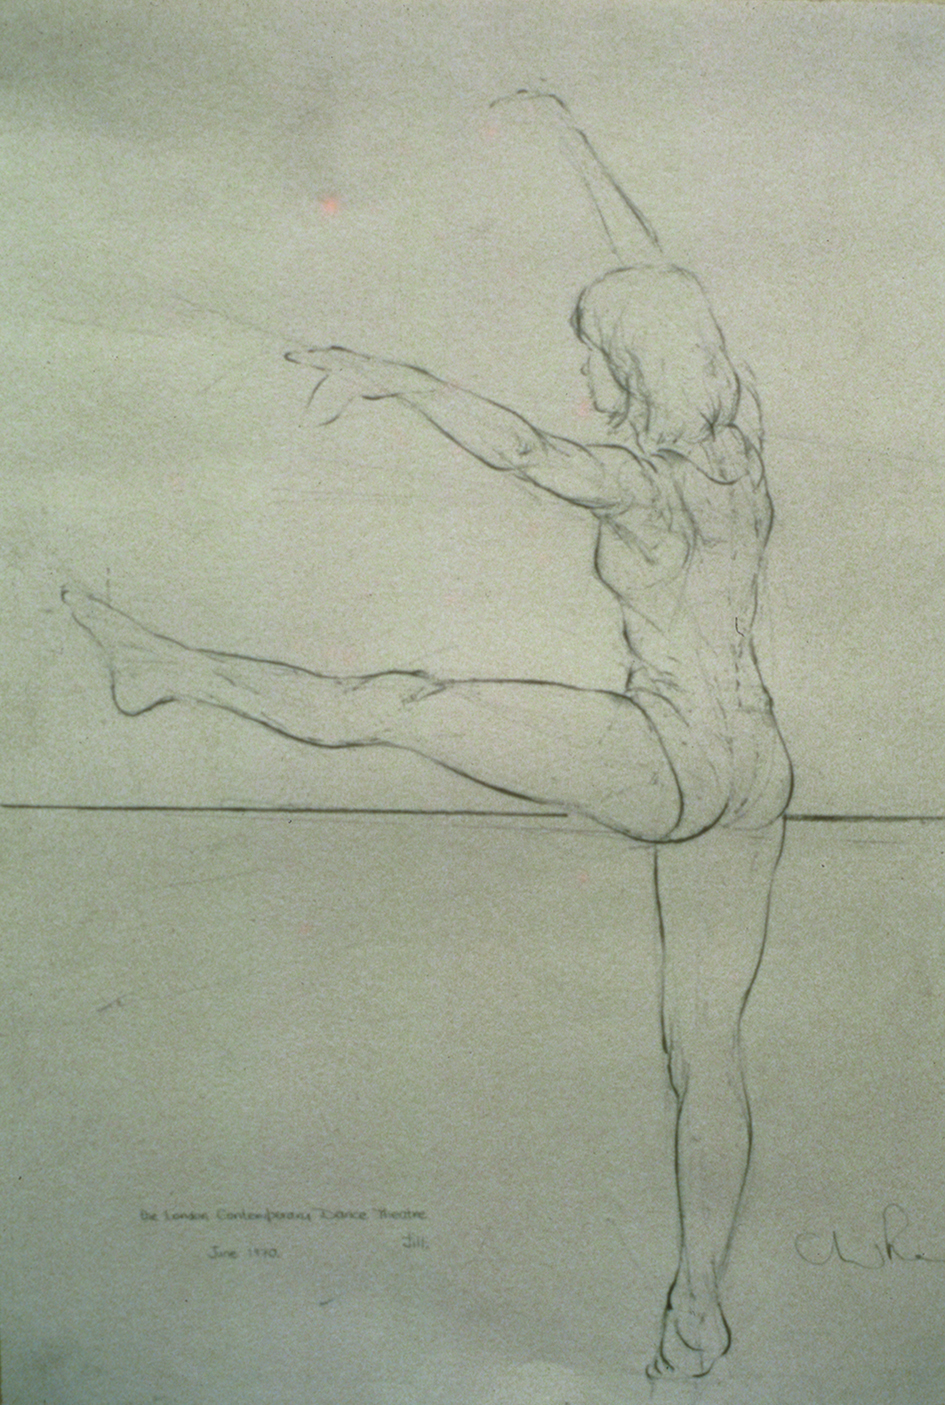 Preparatory Drawings Jill.  Study, London Contemporary Dance Theatre